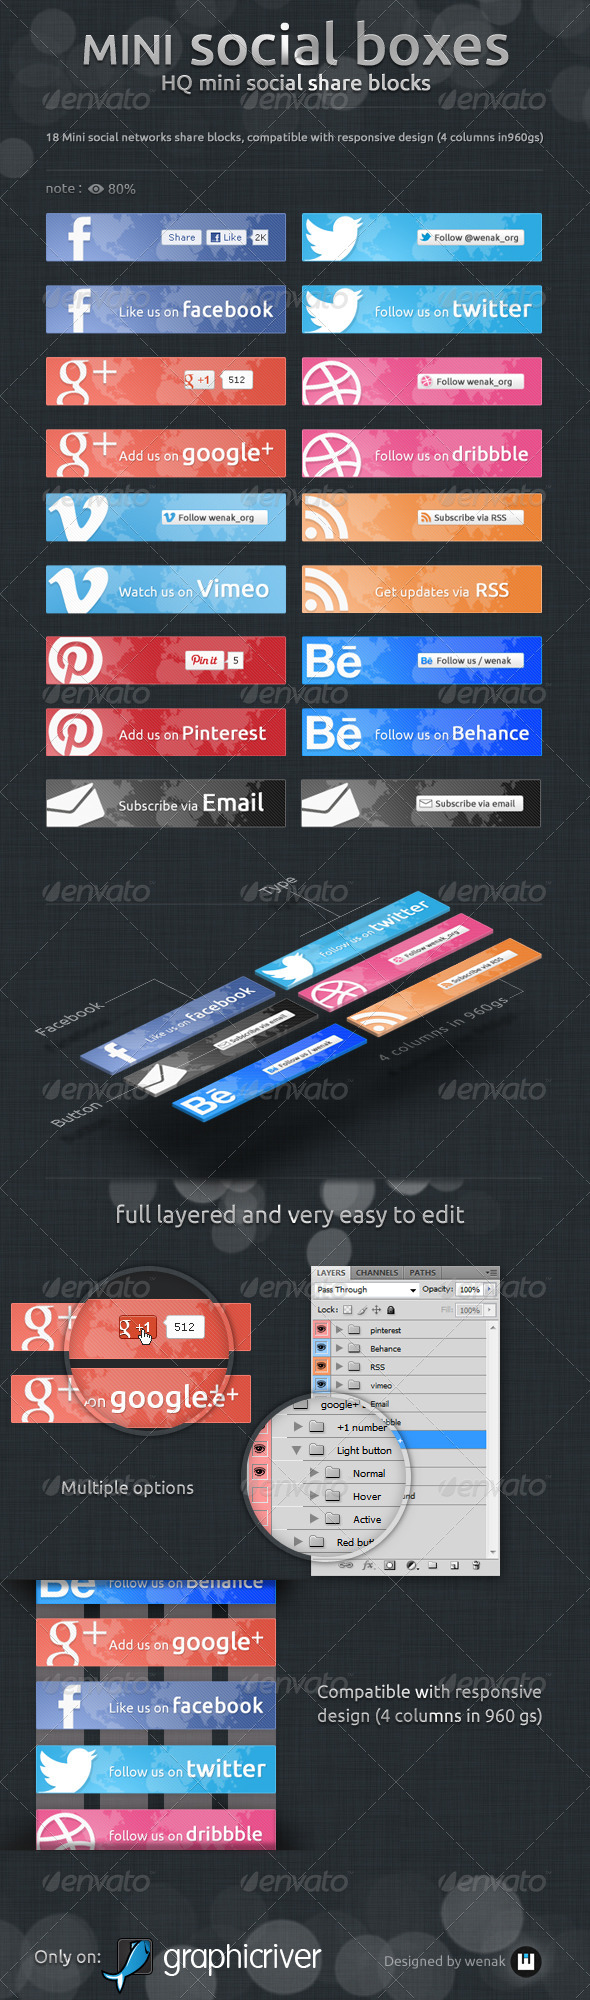 GraphicRiver Mini Social Boxes Social Share Blocks 5039393